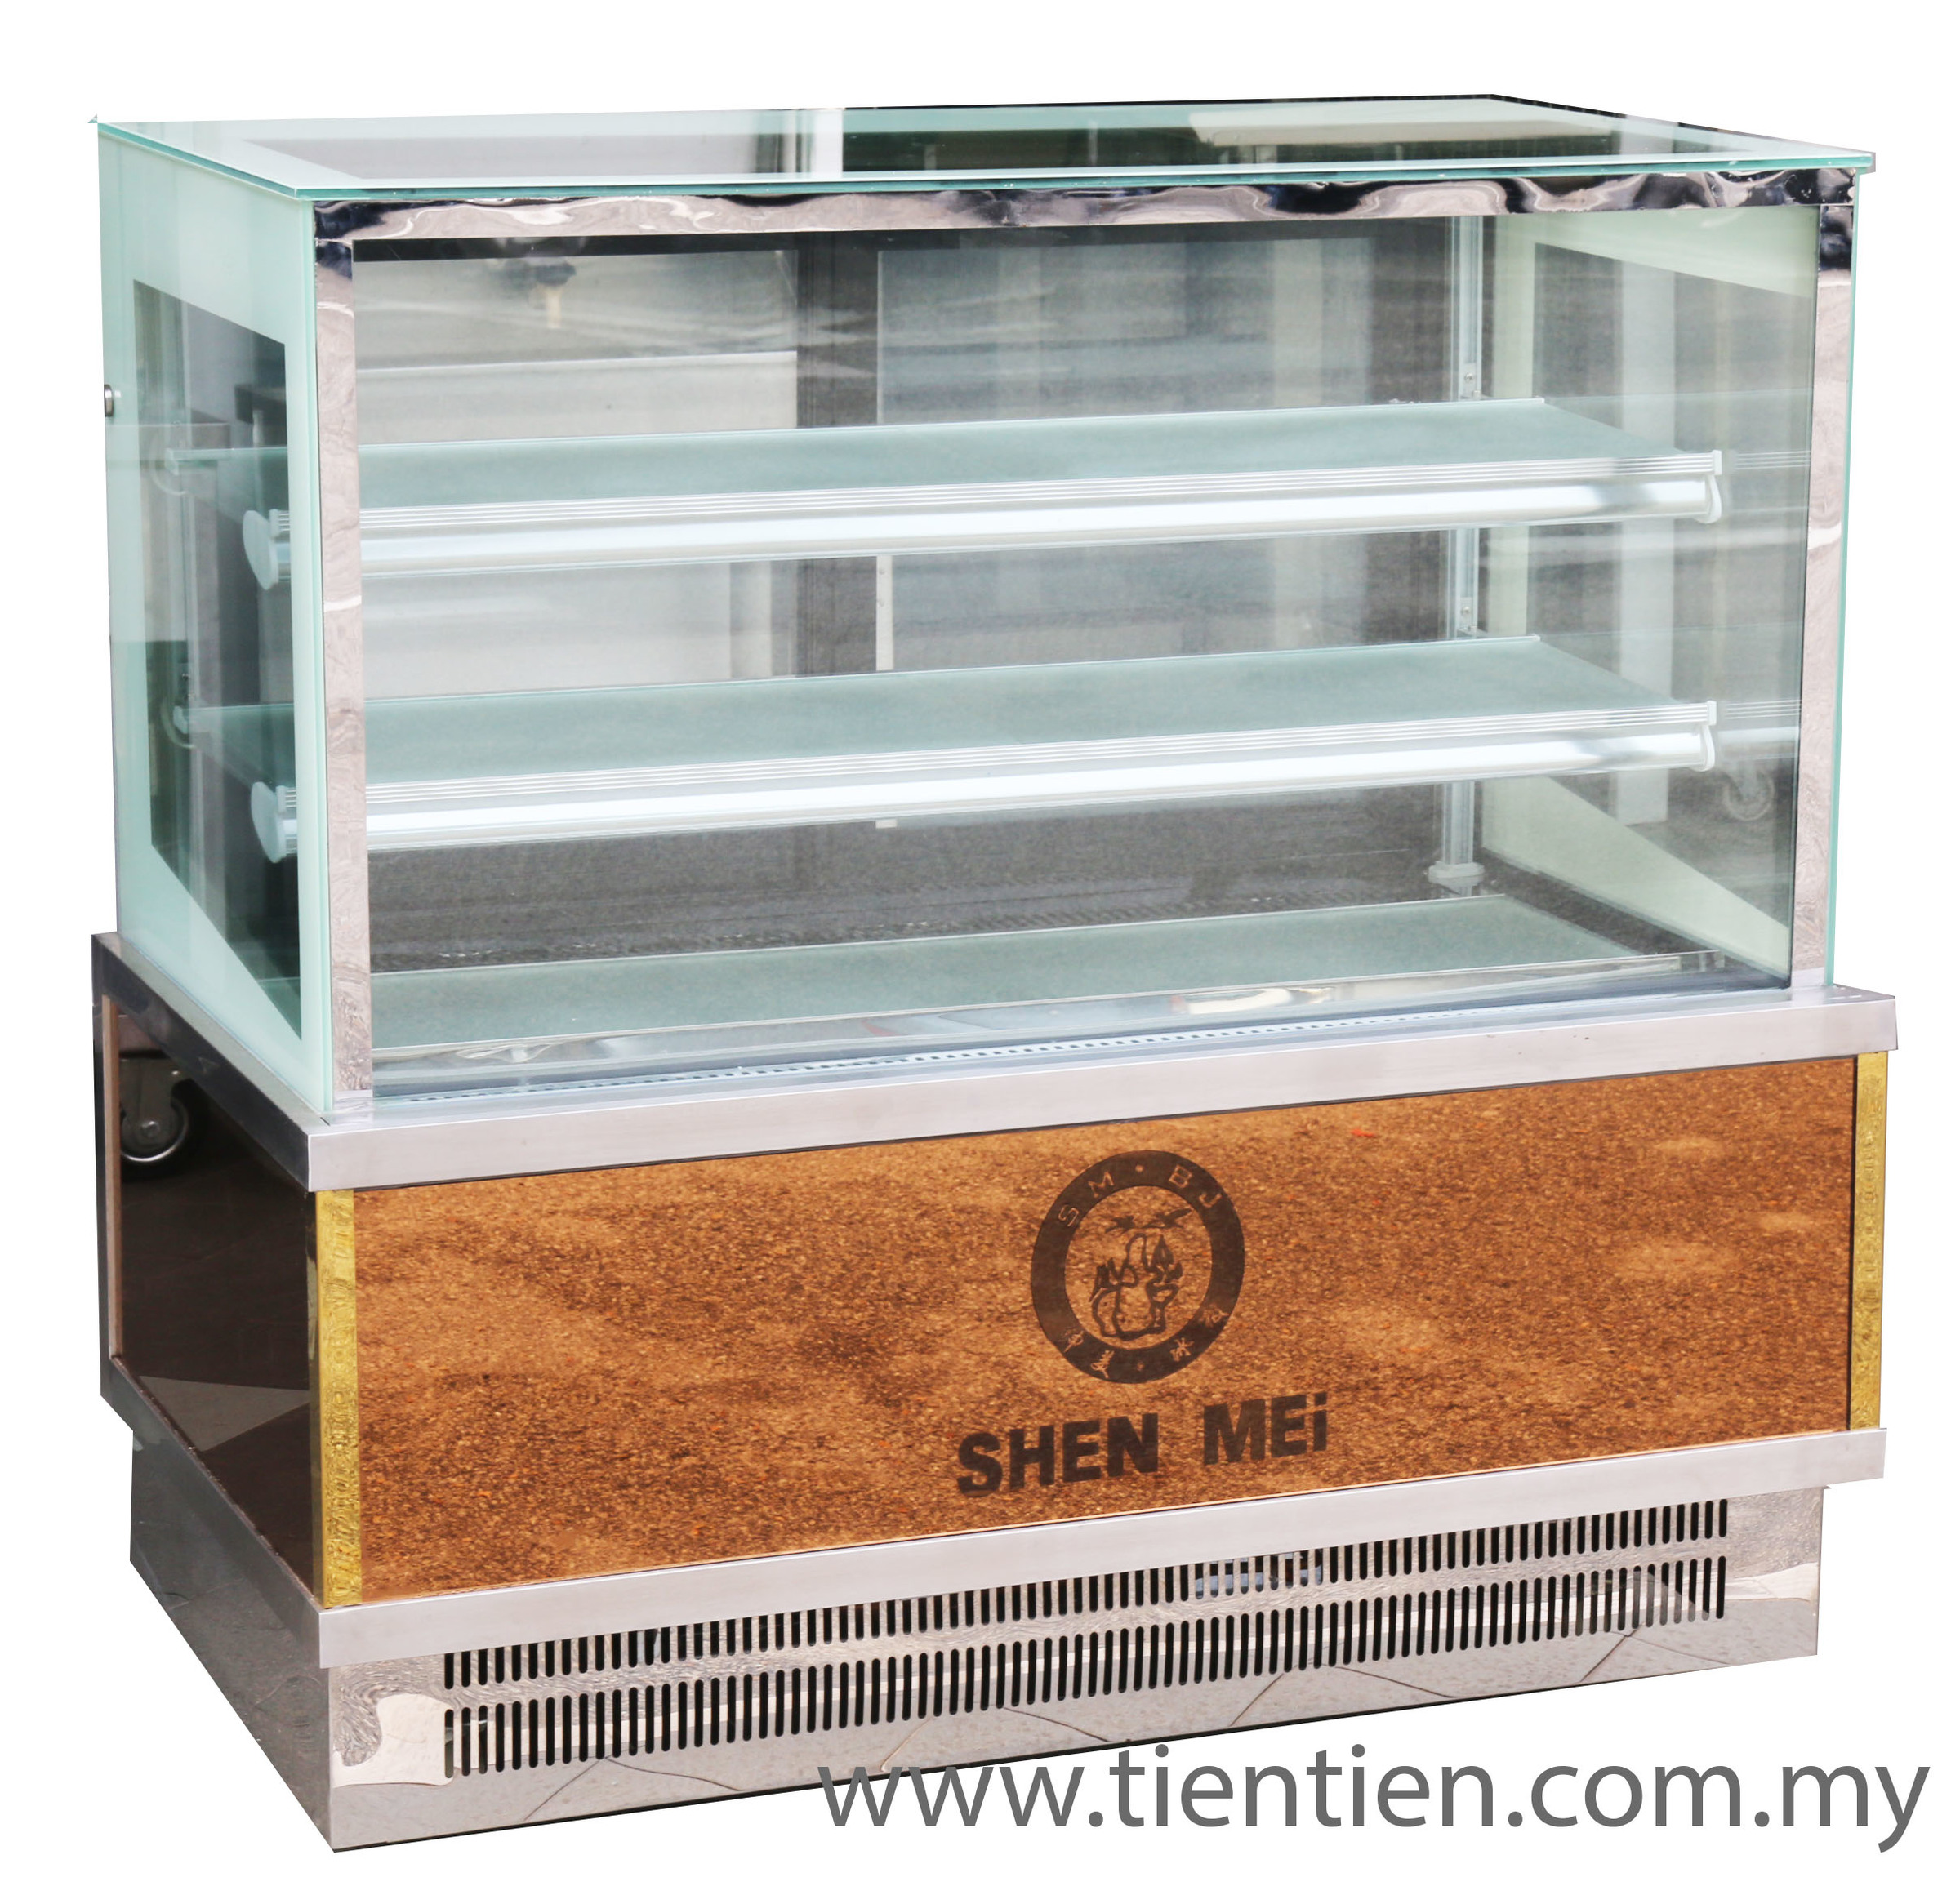 4FT CAKE DISPLAY CHILLER SHOWCASE GOLD BOTTOM BACK OPENING MALAYSIA TIEN TIEN.jpg